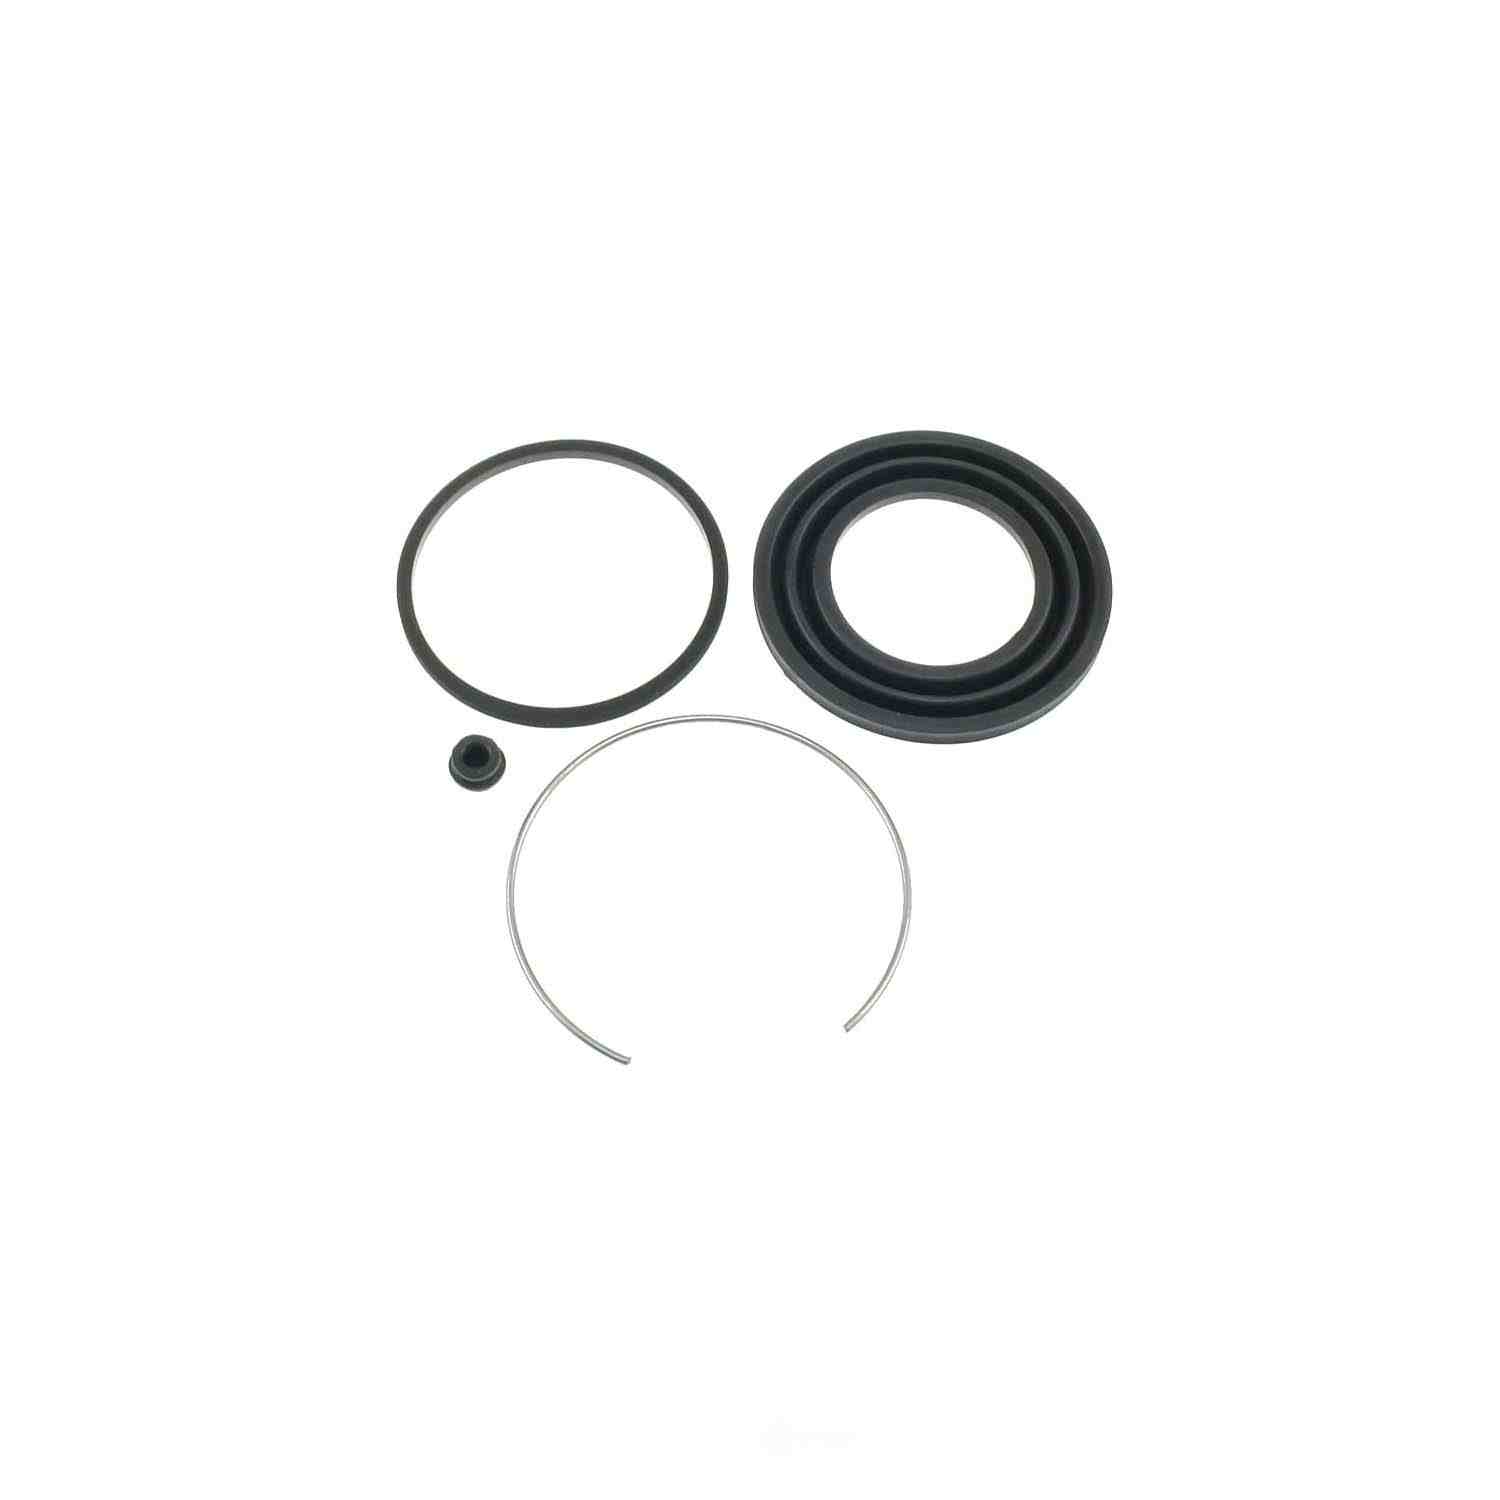 CARLSON QUALITY BRAKE PARTS - Disc Brake Caliper Repair Kit (Front) - CRL 41236